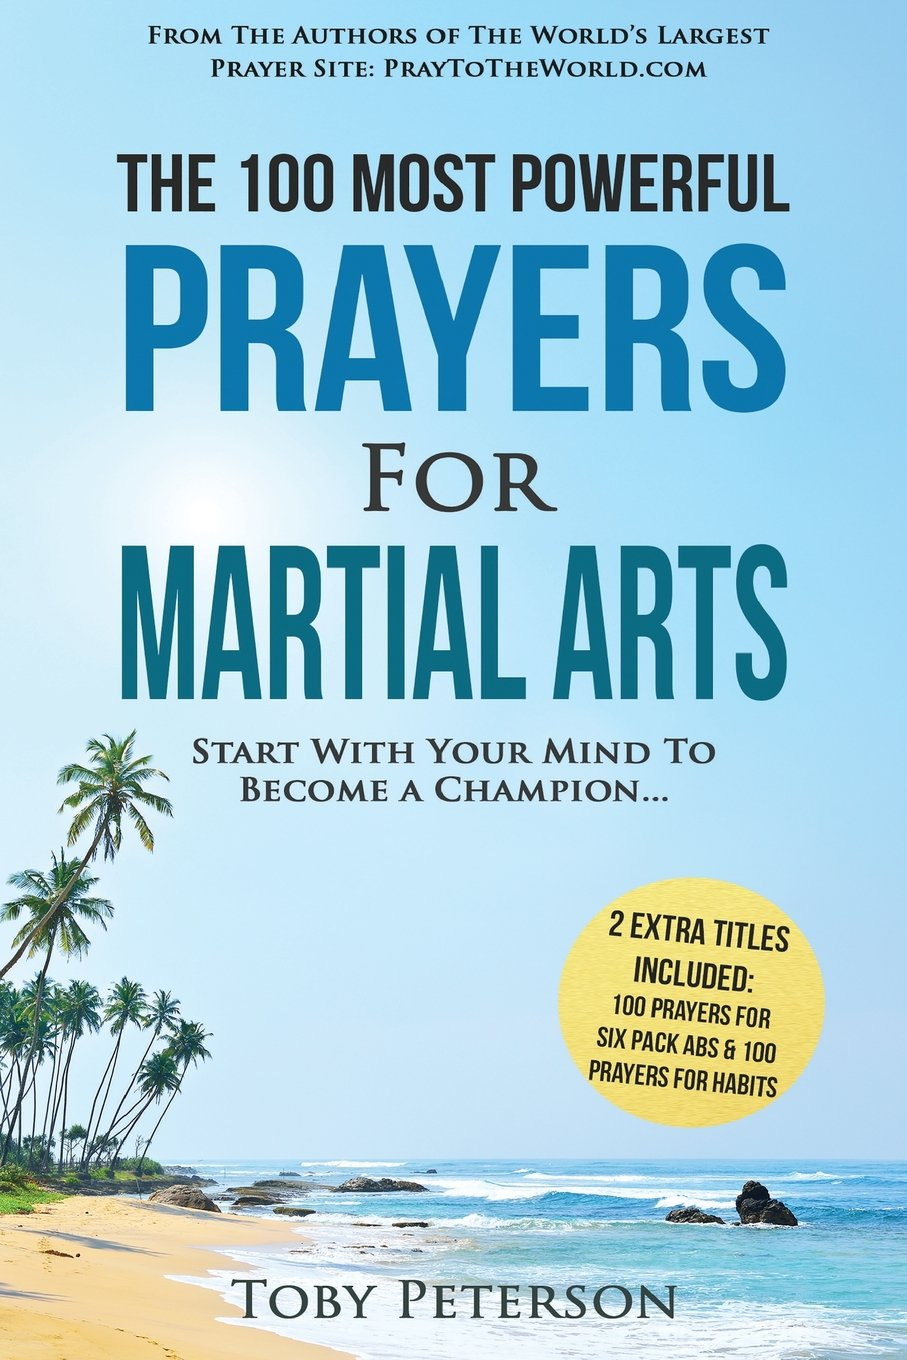 Download Prayer  The 100 Most Powerful Prayers for Martial Arts  2 Amazing Books Included to Pray for Six Pack Abs & Habits: Start With Your Mind To Become a Champion (Volume 58) pdf epub